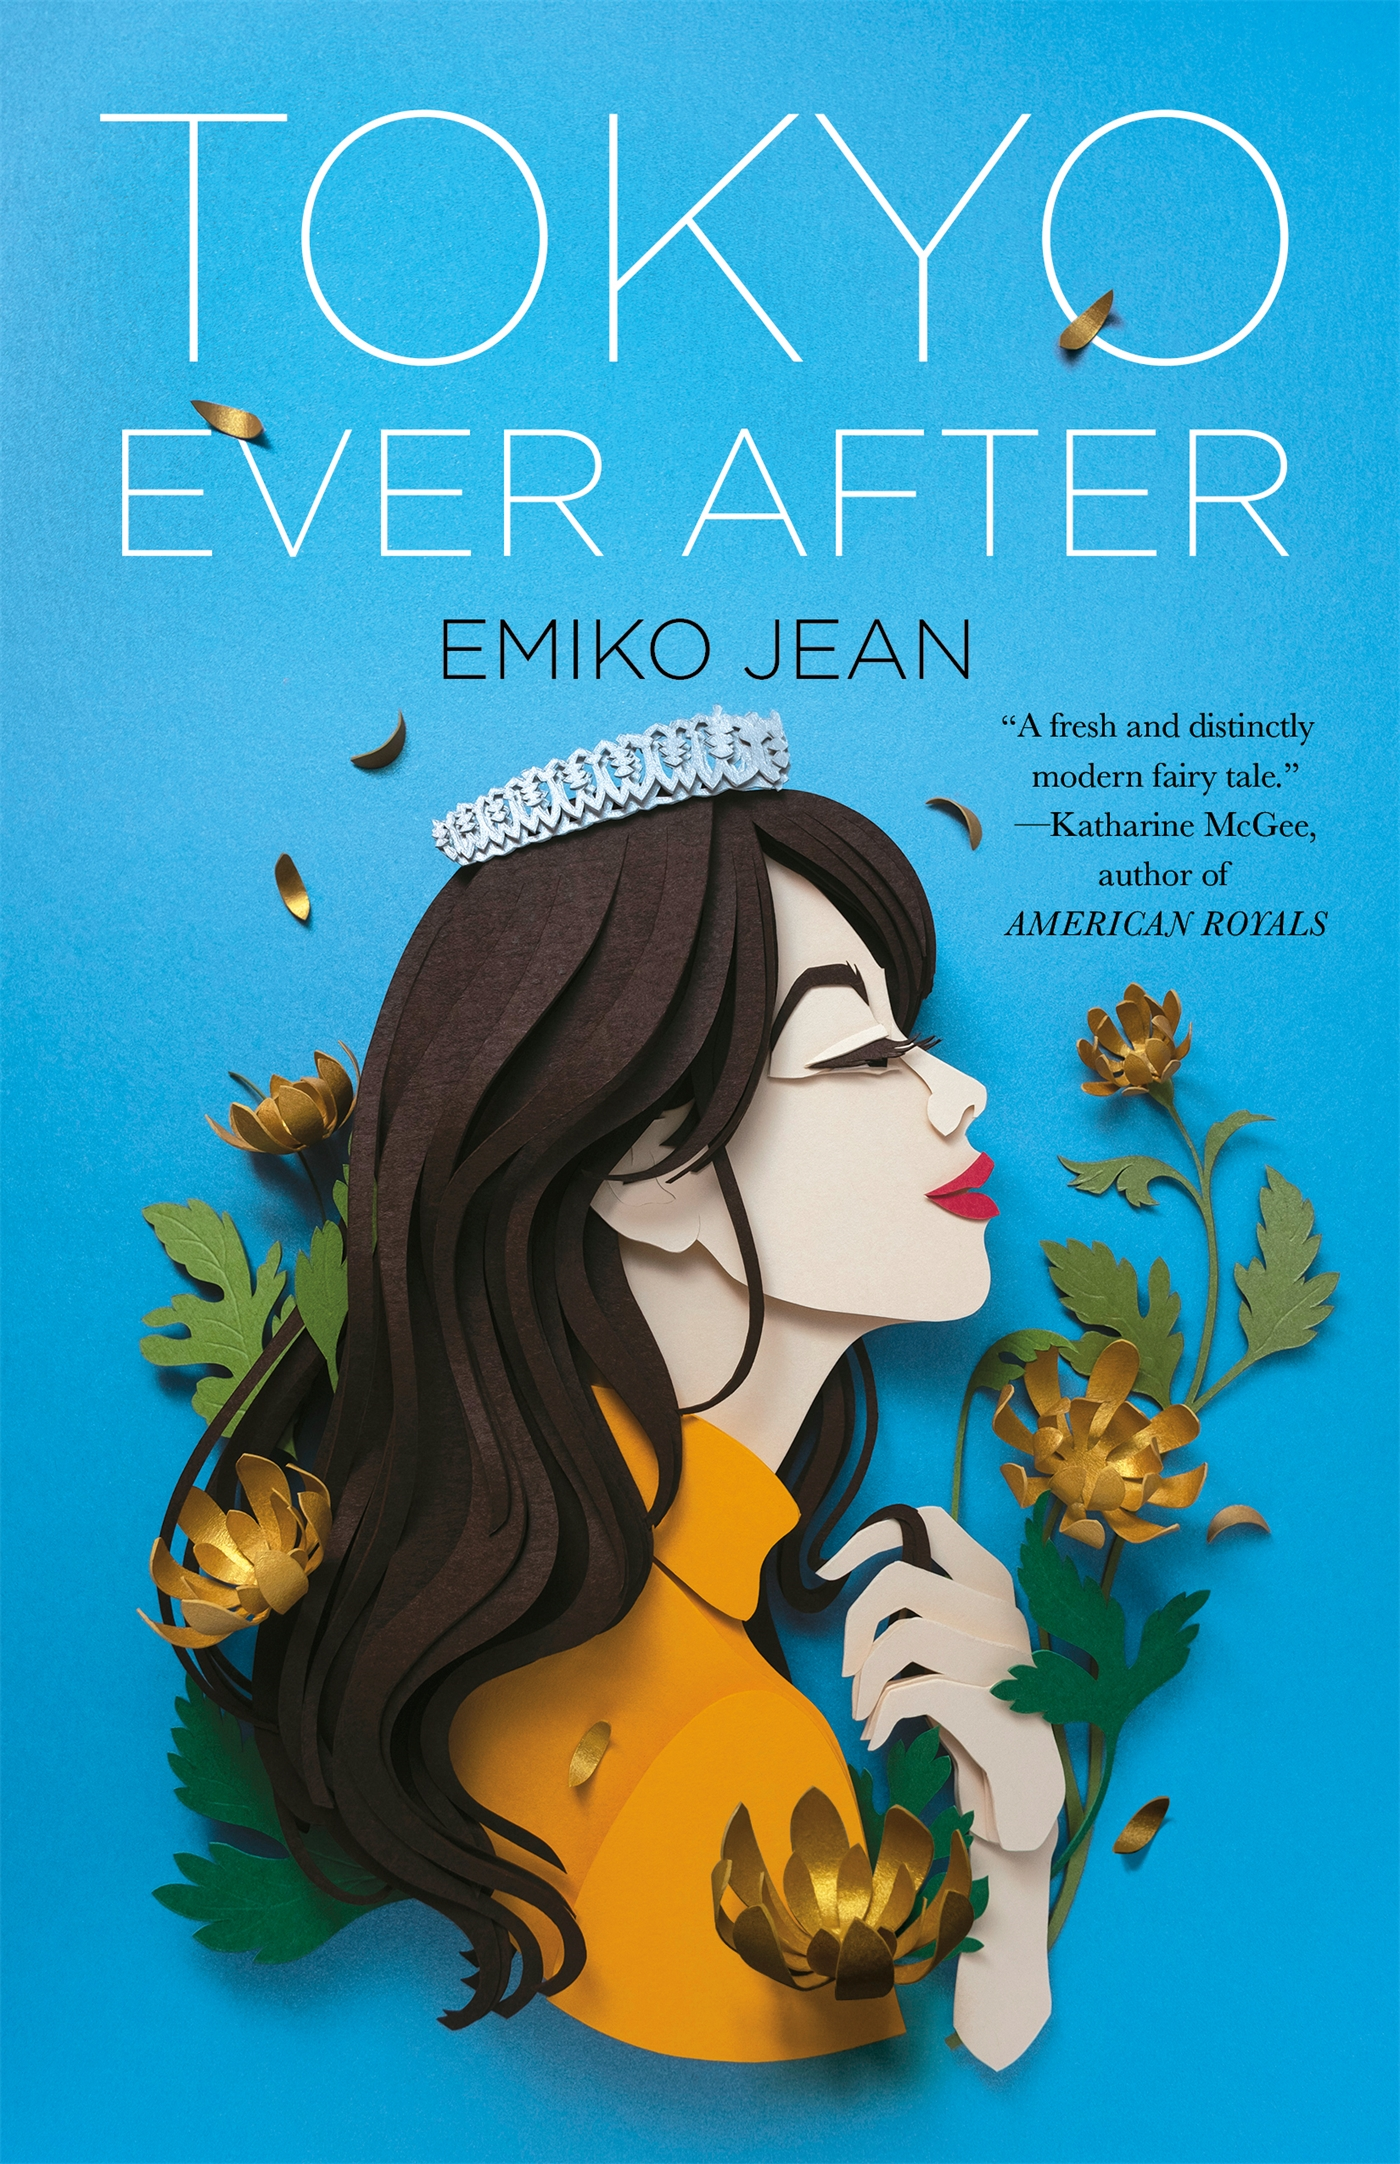 2021 book releases: Tokyo Ever After by Emiko Jean